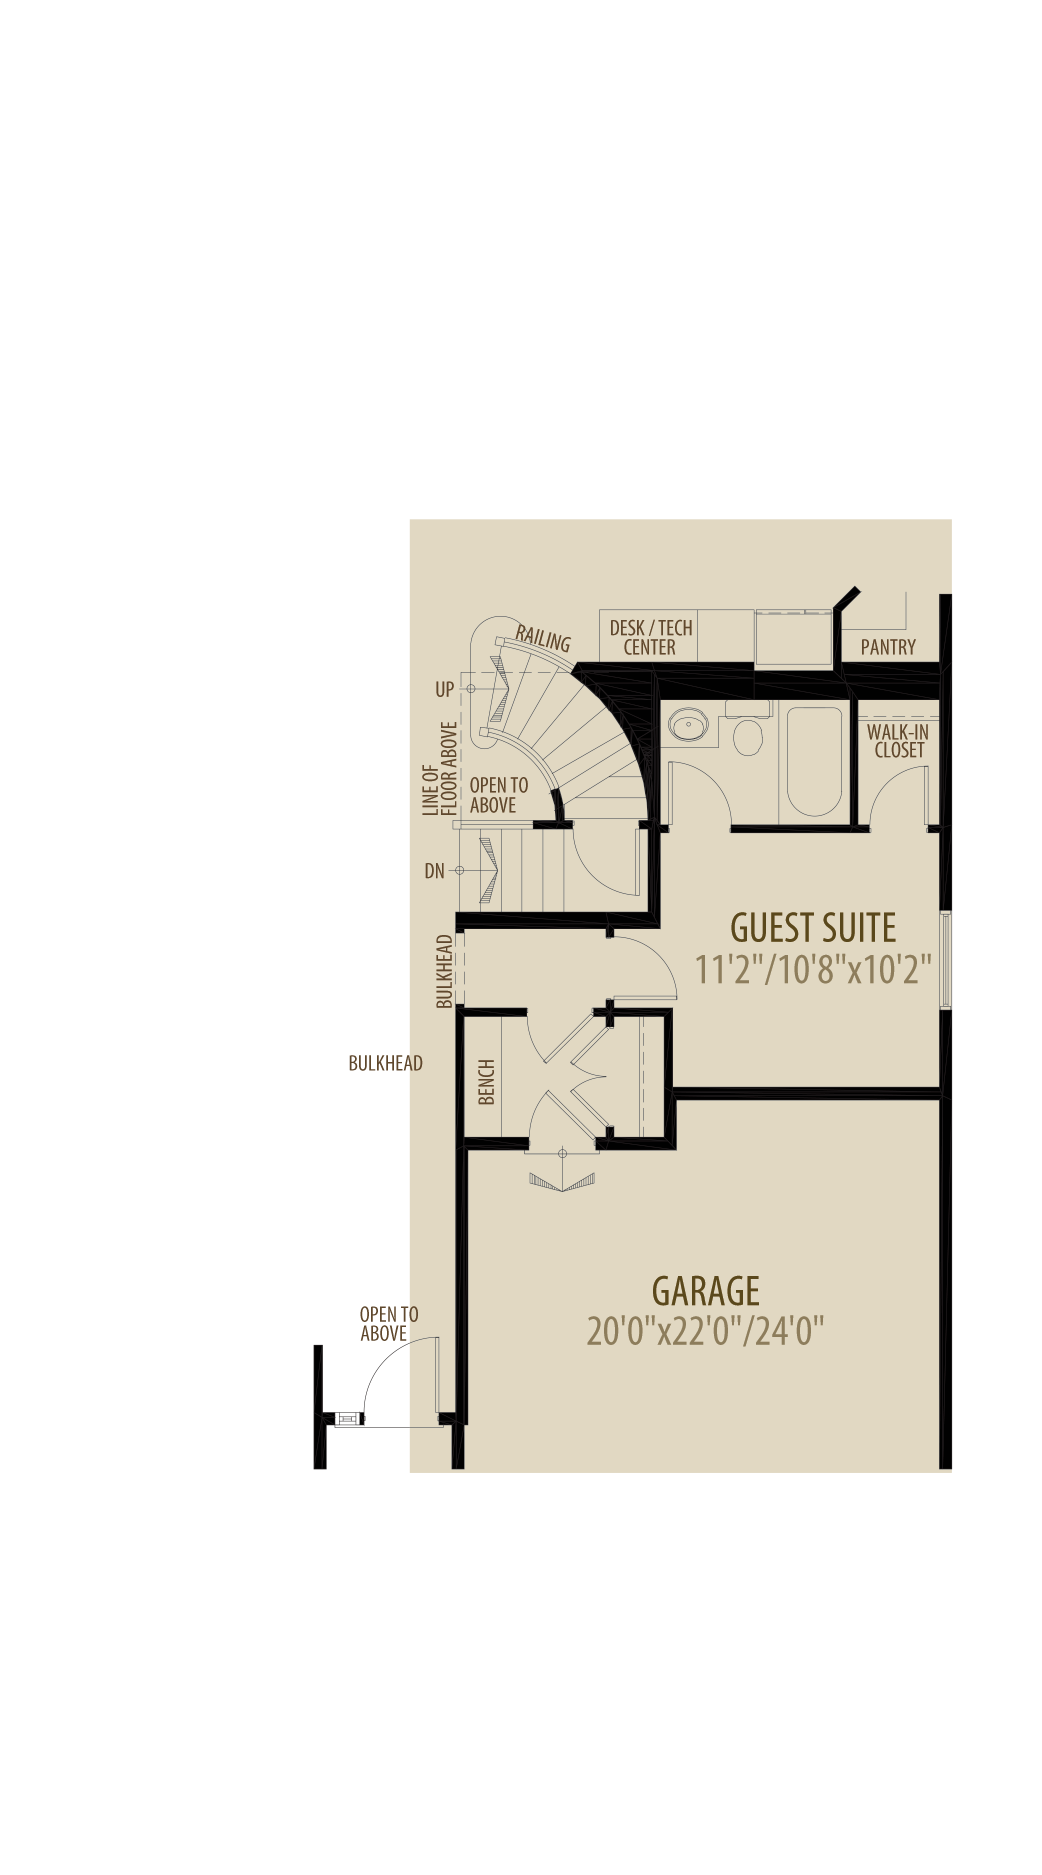 Option 2 Guest Suite adds 176sq ft